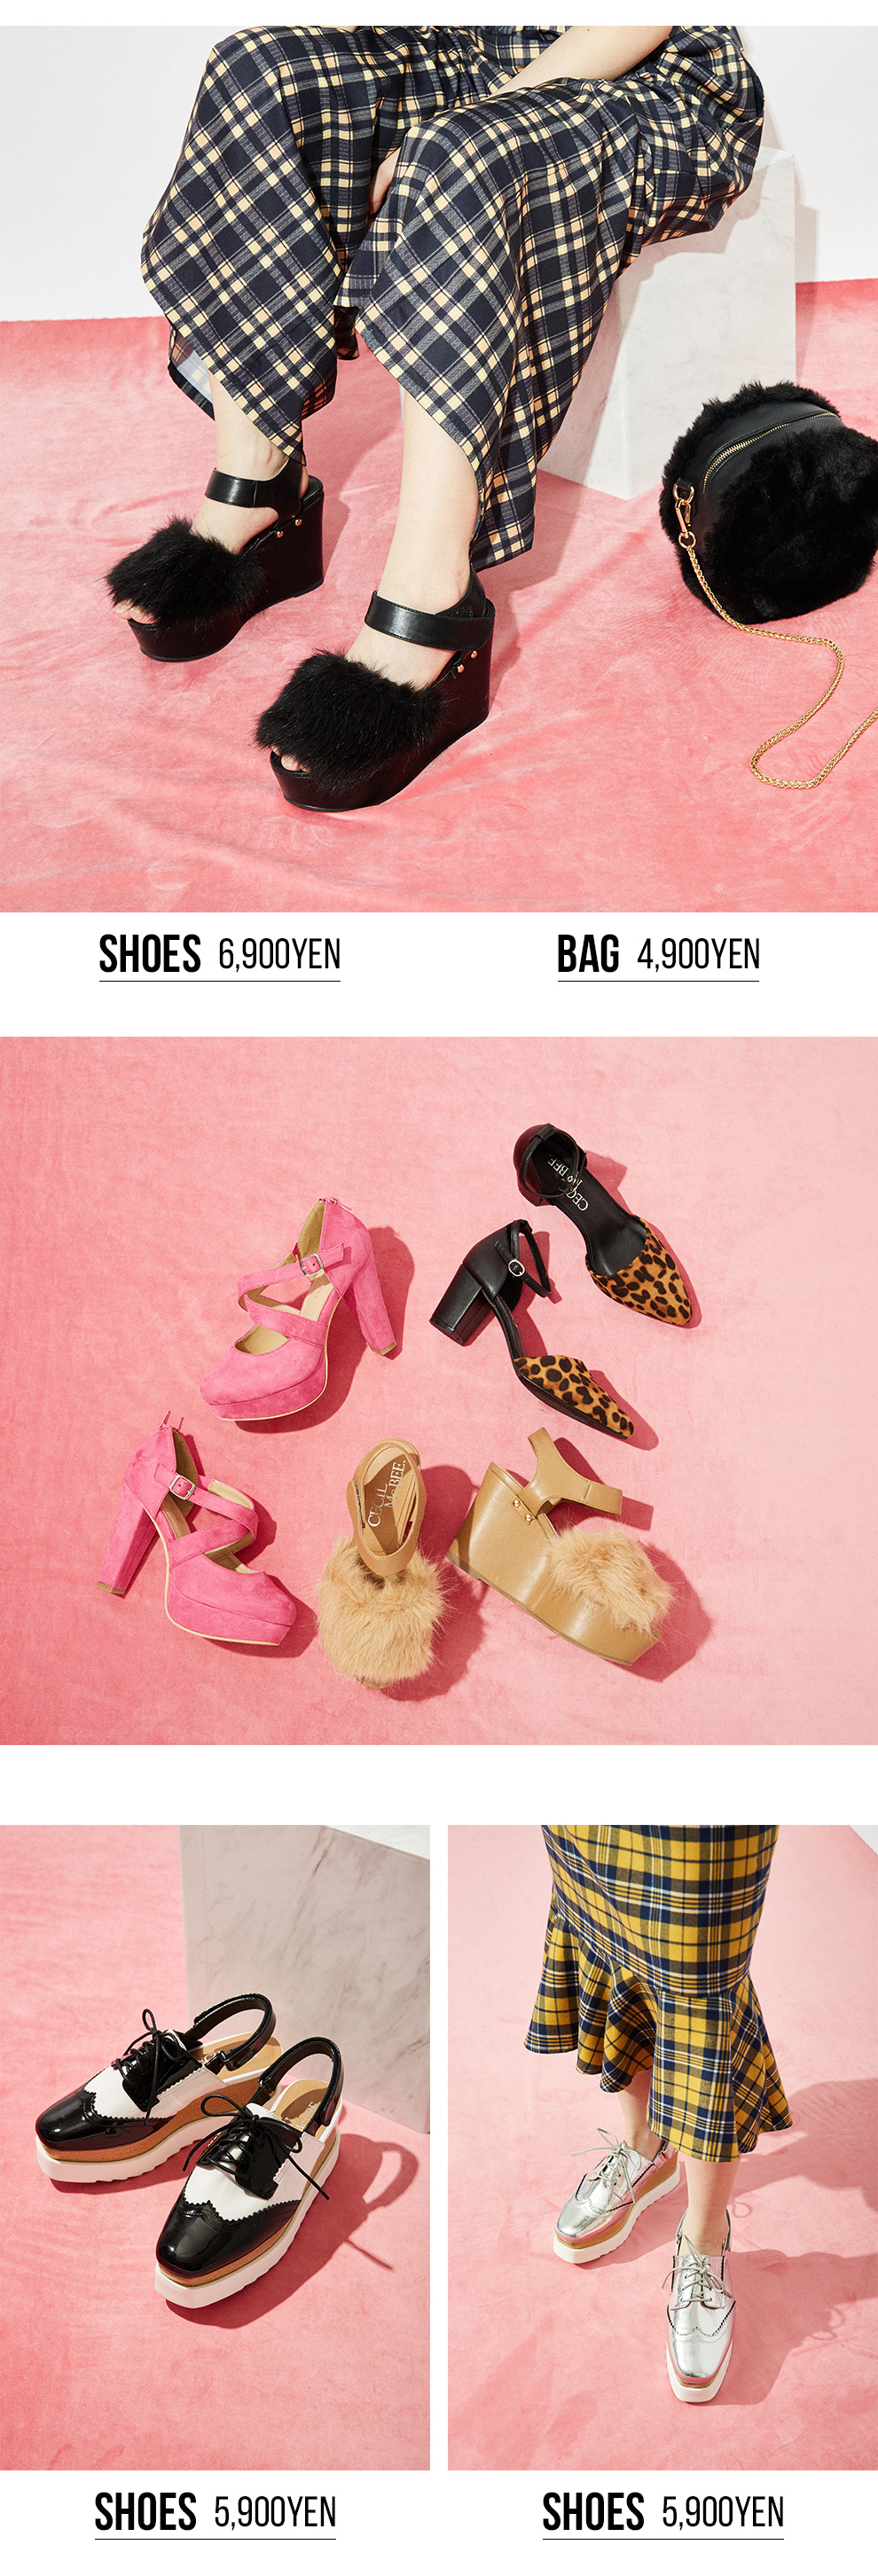 Shoes&Bag Collection